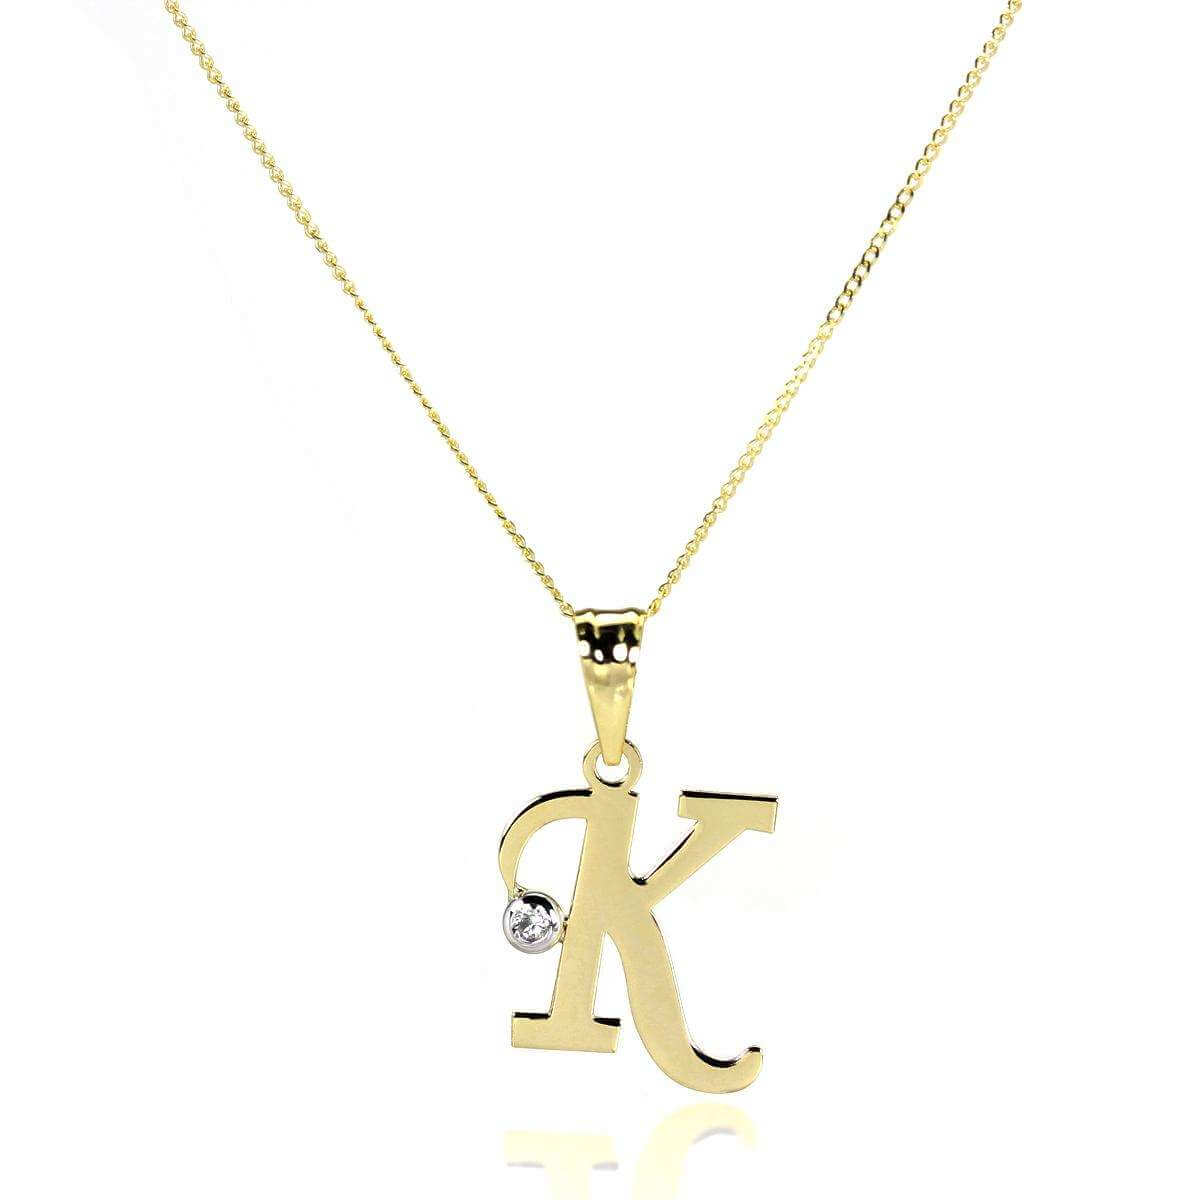 9ct Gold Letter K Pendant with CZ Crystal